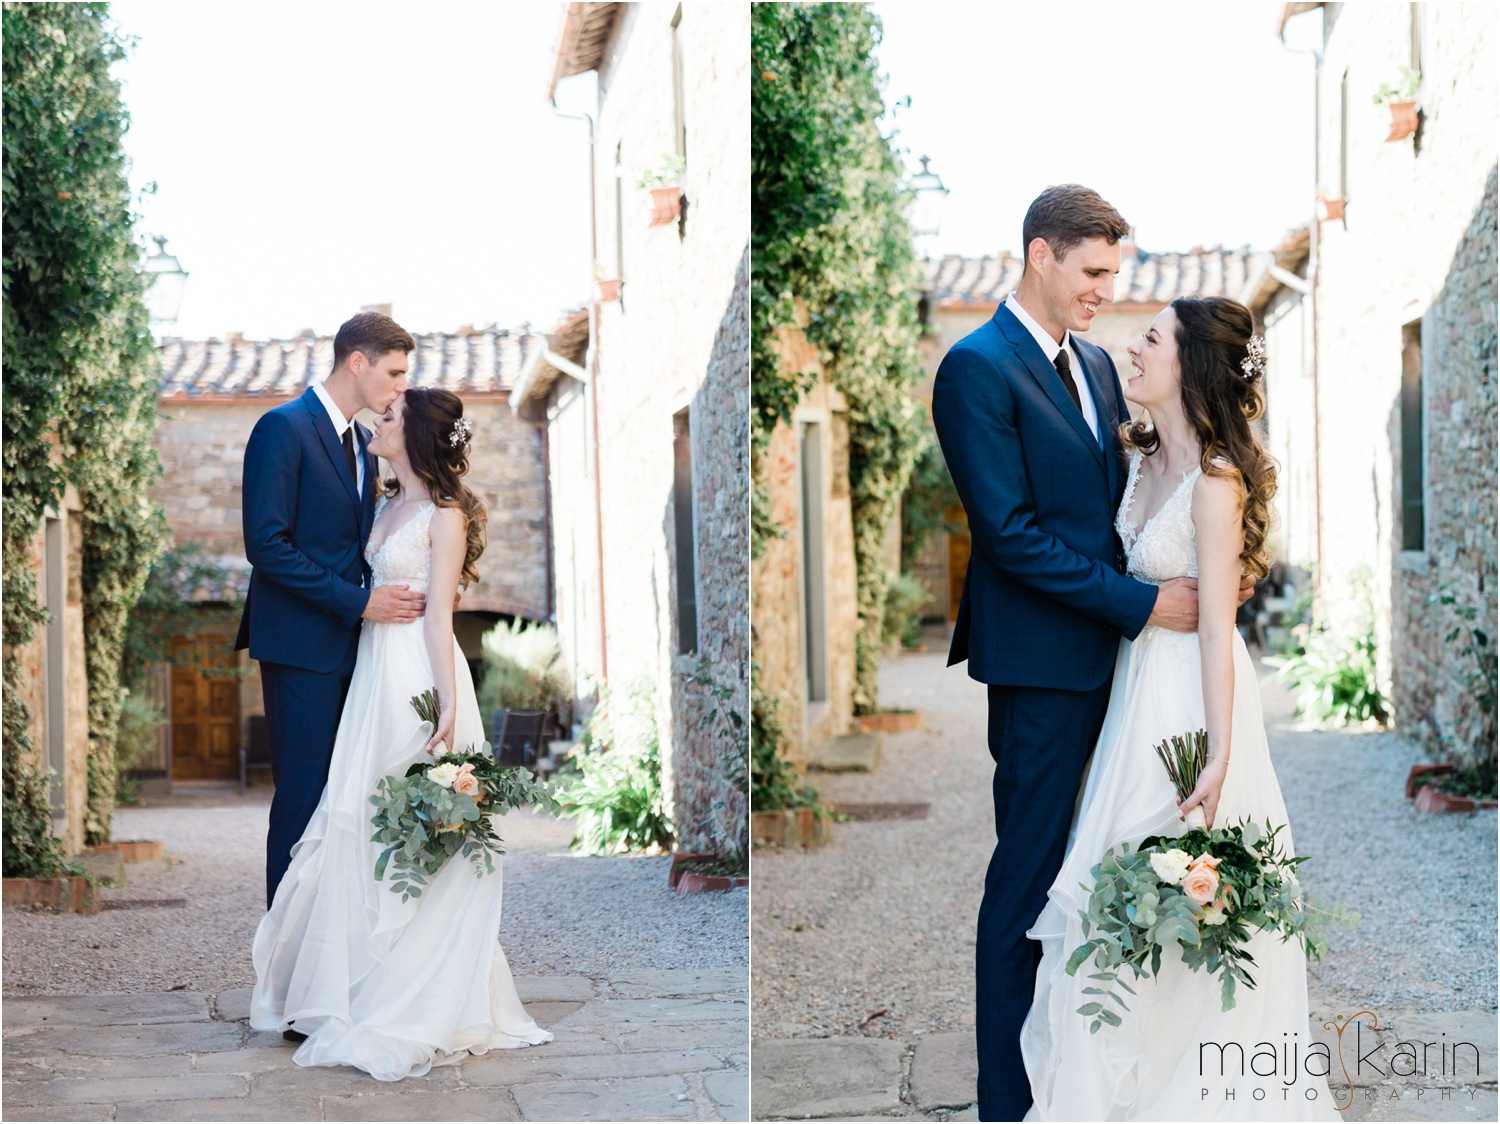 Castelvecchi-Tuscany-Wedding-Maija-Karin-Photography_0024.jpg